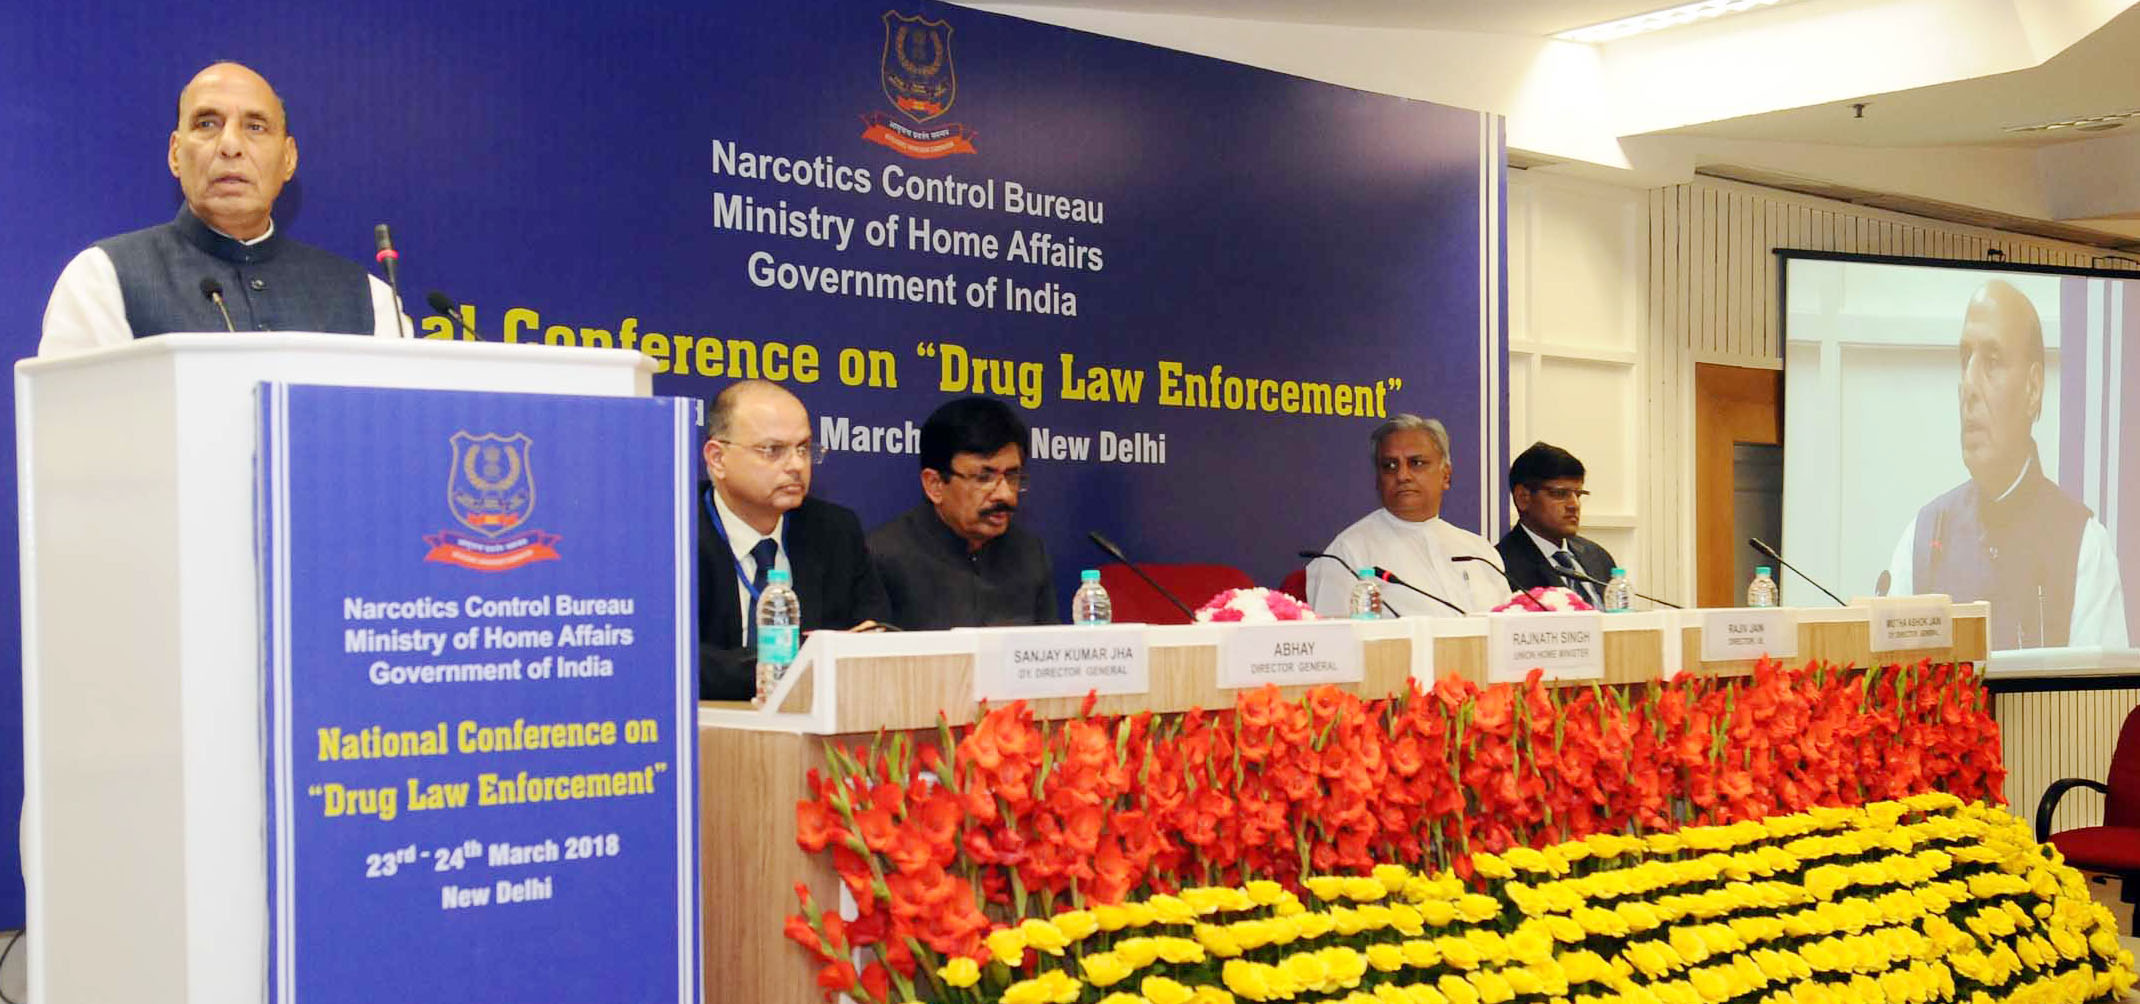 The Union Home Minister, Shri Rajnath Singh addressing at the Closing Ceremony of the 2-day National Conference on Drug Law Enforcement, organised by Narcotics Control Bureau (NCB), MHA, in New Delhi on March 24, 2018.  The DG, NCB, Shri Abhay and Director, IB, Shri Rajiv Jain are also seen.